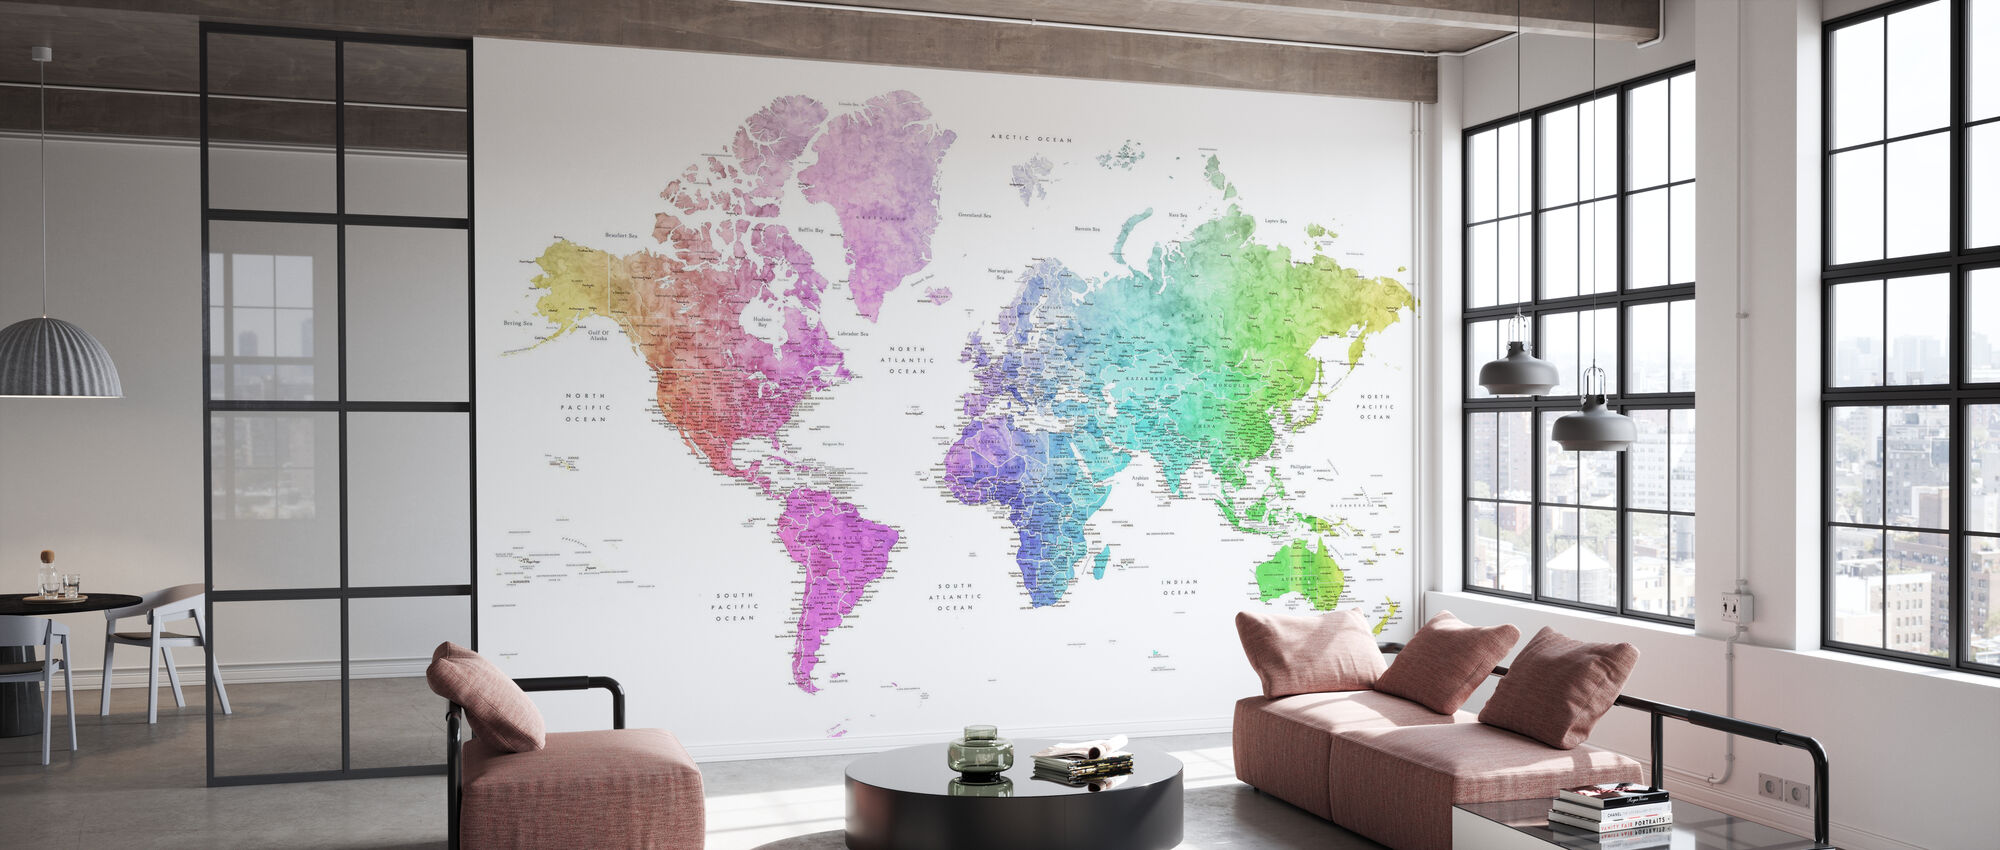 World Map with Cities - Wallpaper - Office